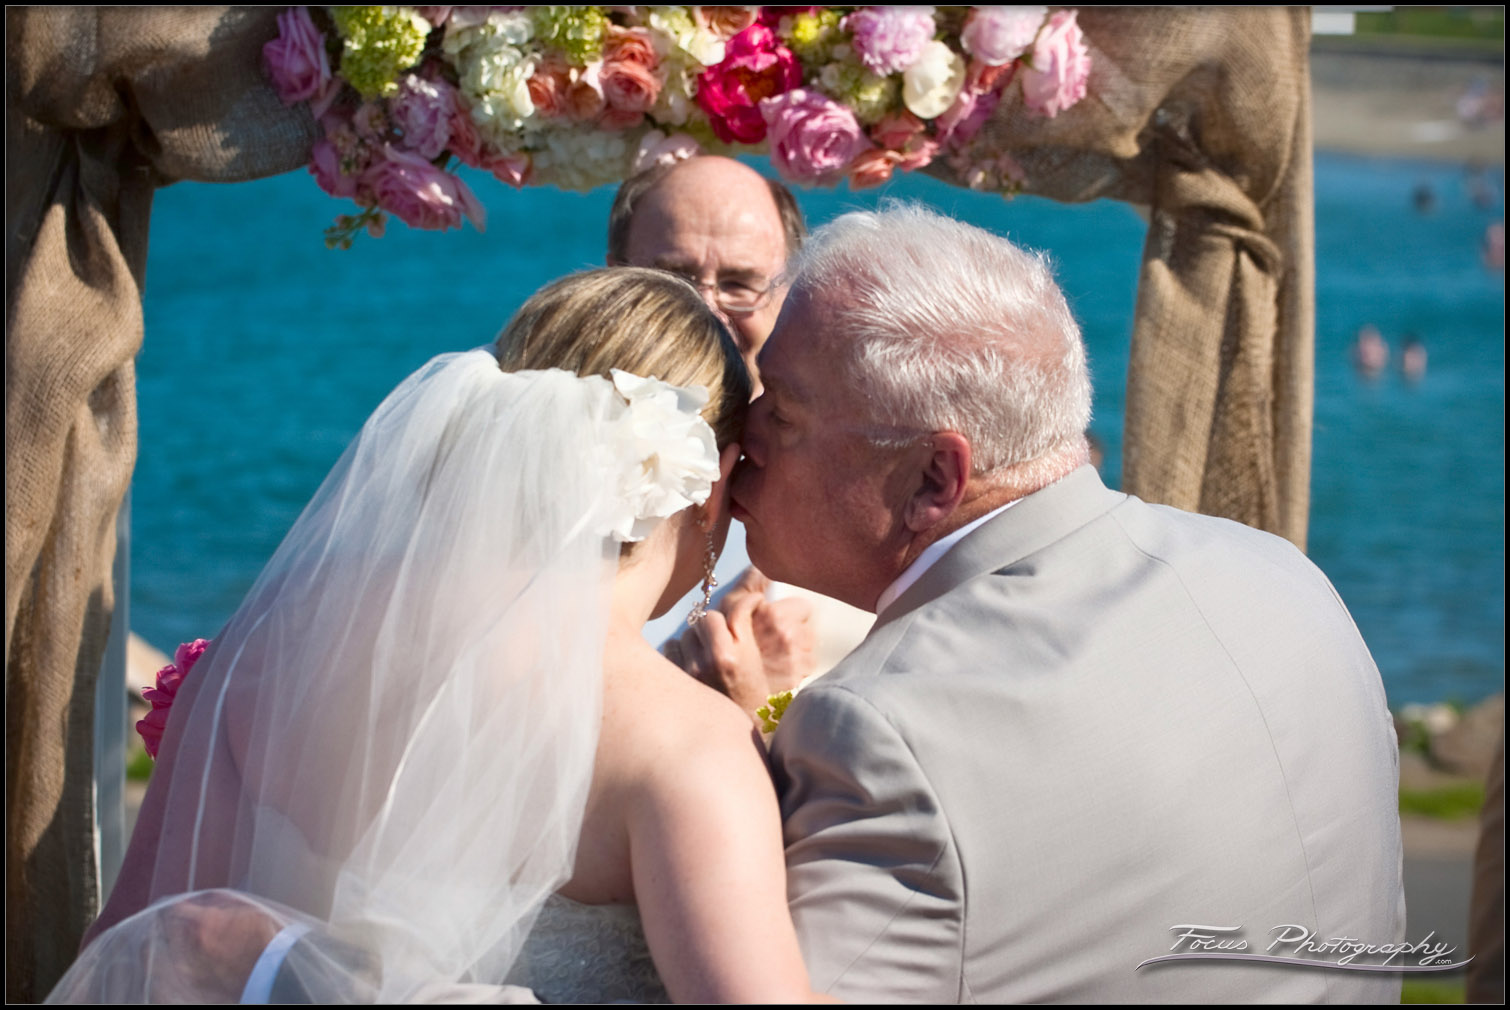 the father of the bride gives her a kiss as he leaves her at the wedding altar